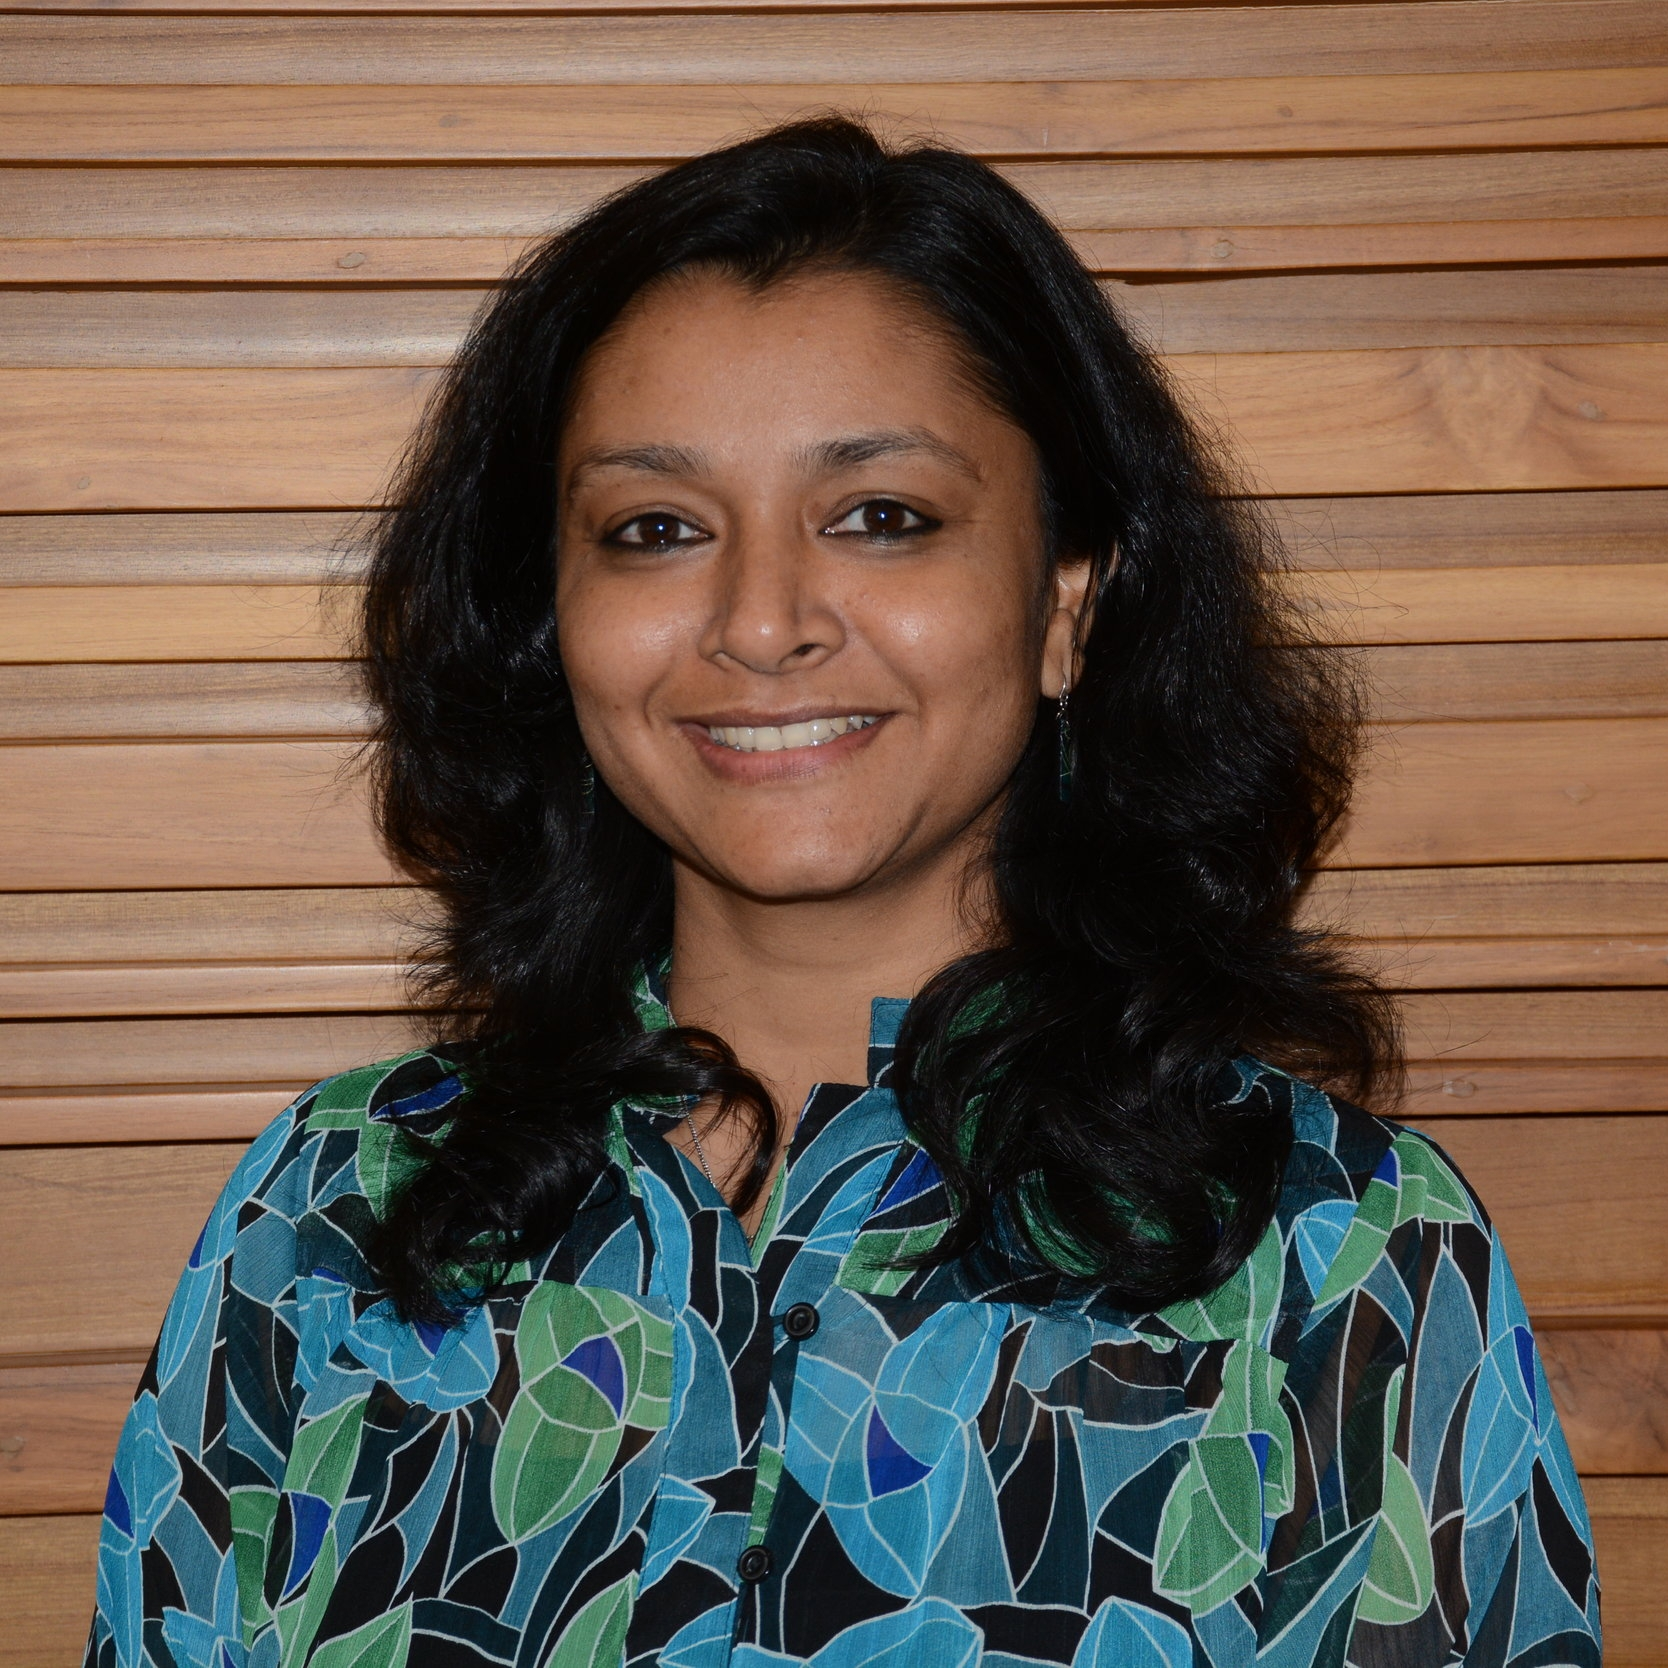 Mansi Agarwal, Founder & CEO of UpSkill Management Services